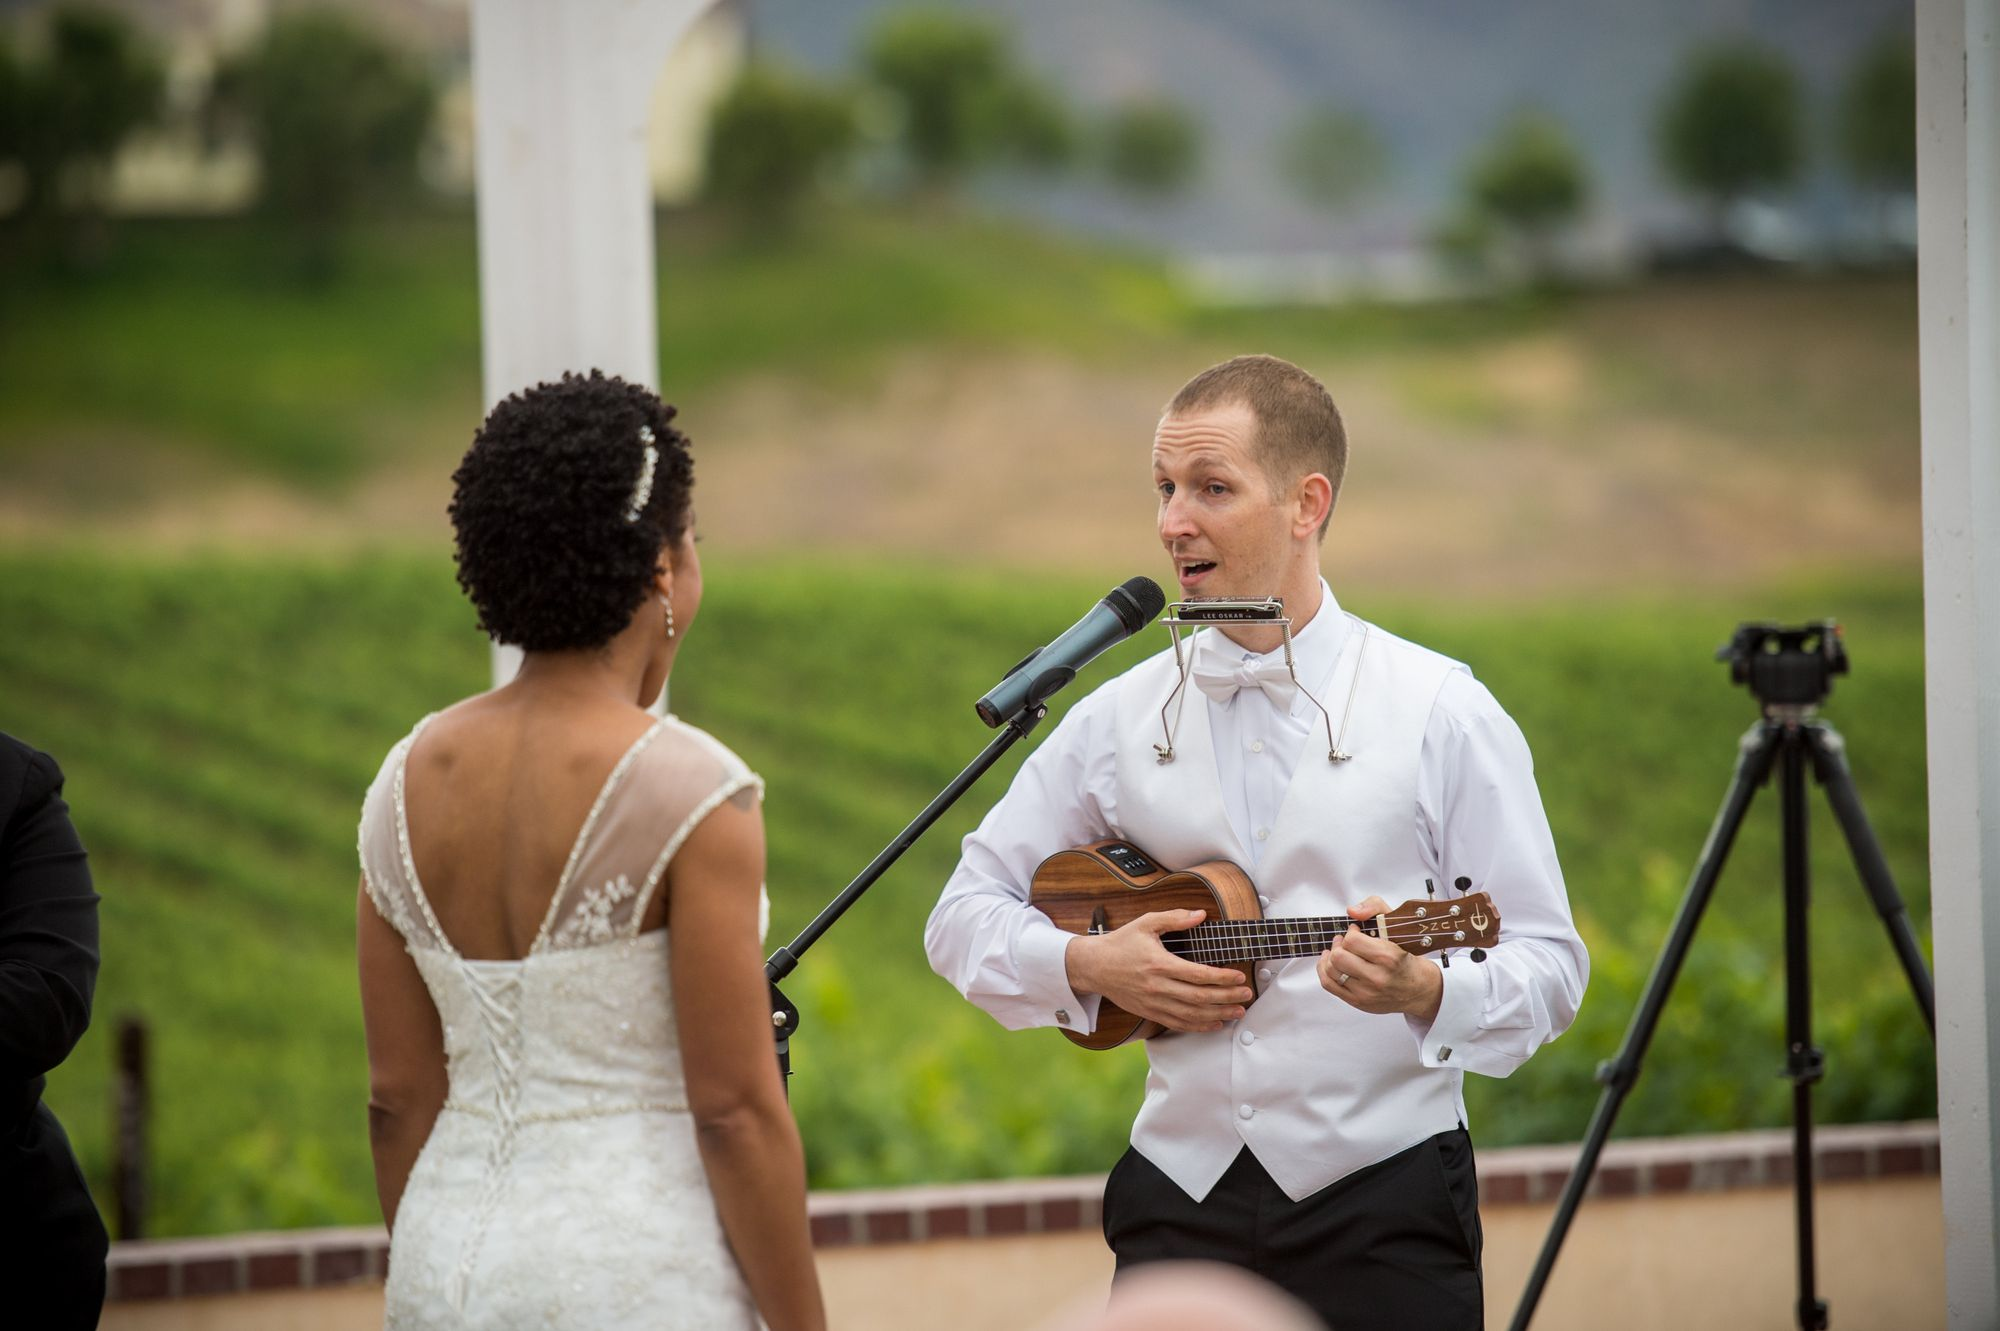 Surprising my wife by playing the Ukulele and Harmonica as well as singing at our wedding